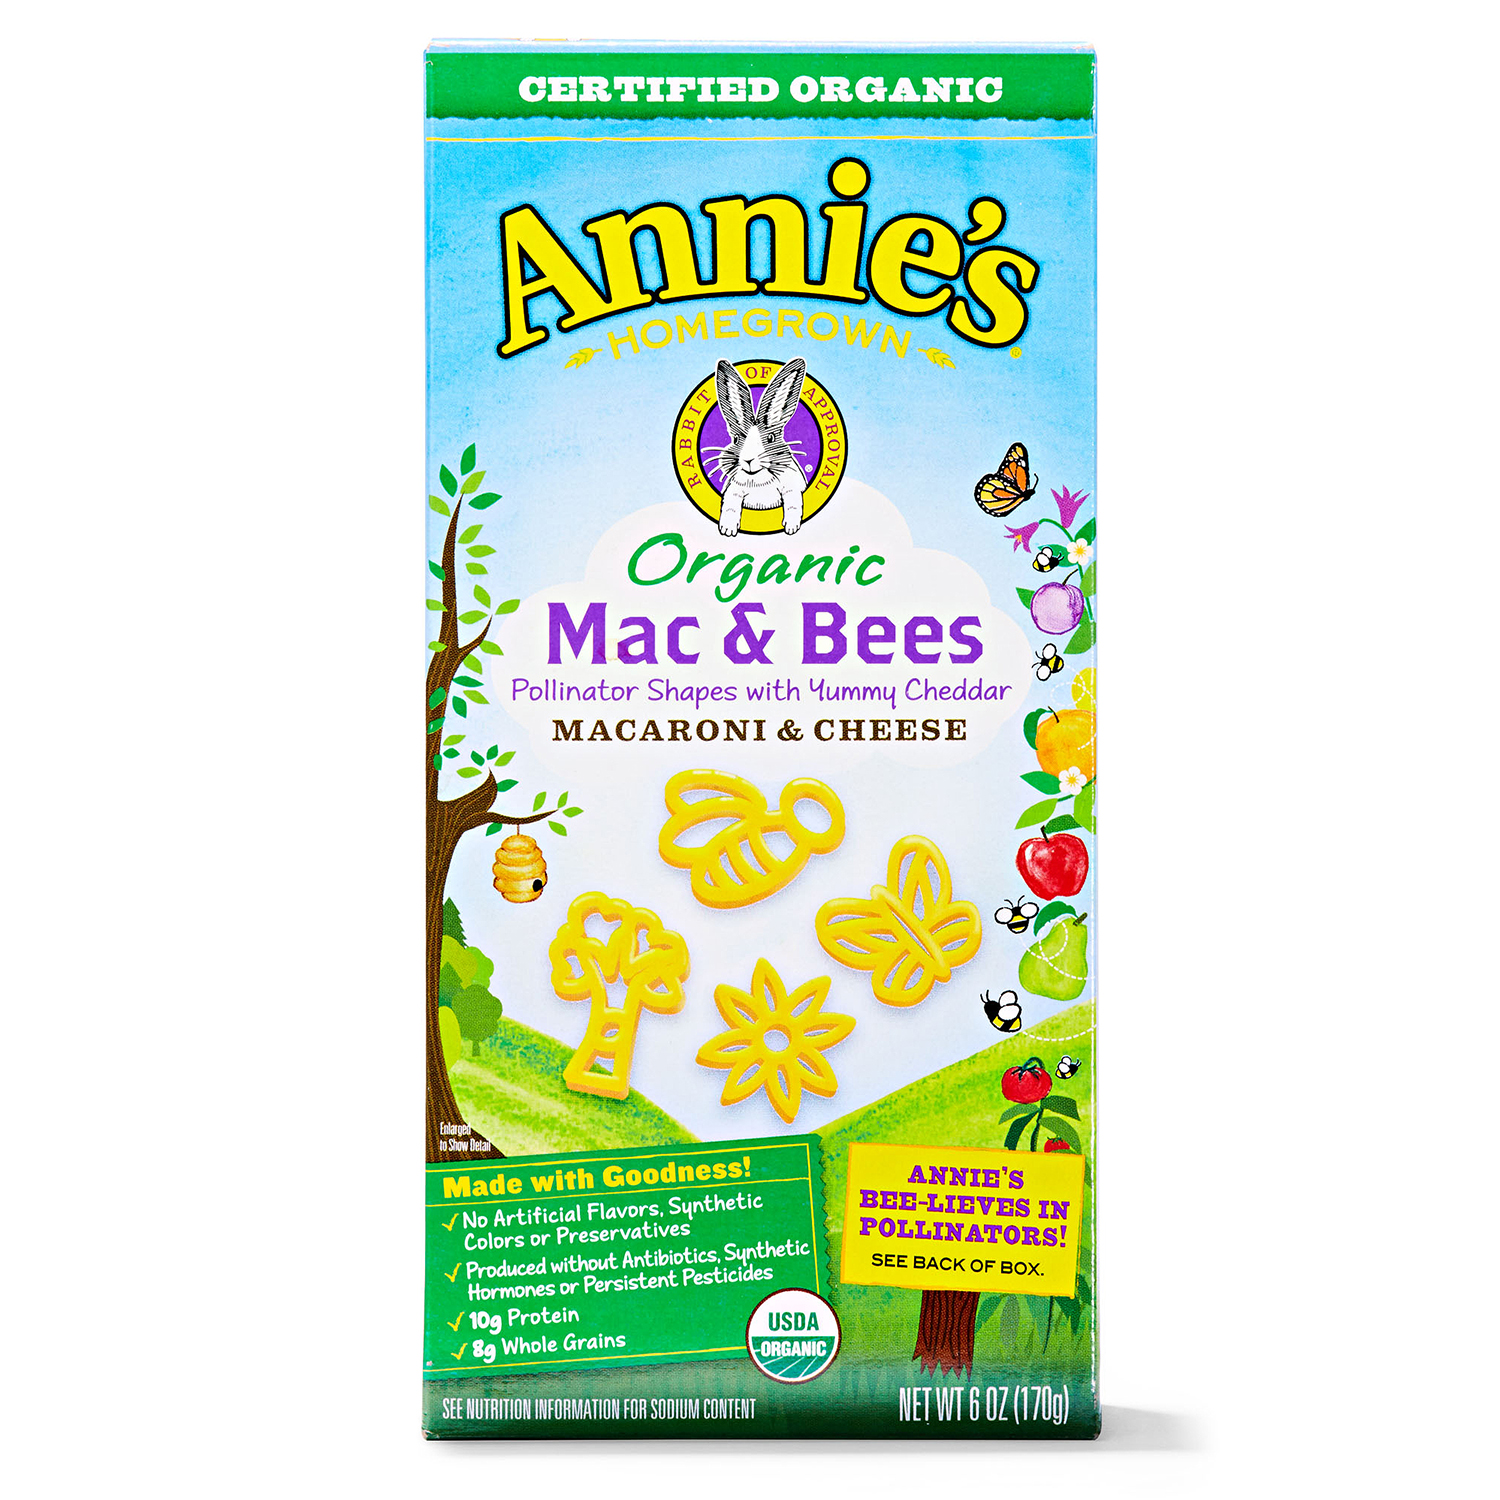 annies organic mac and bees